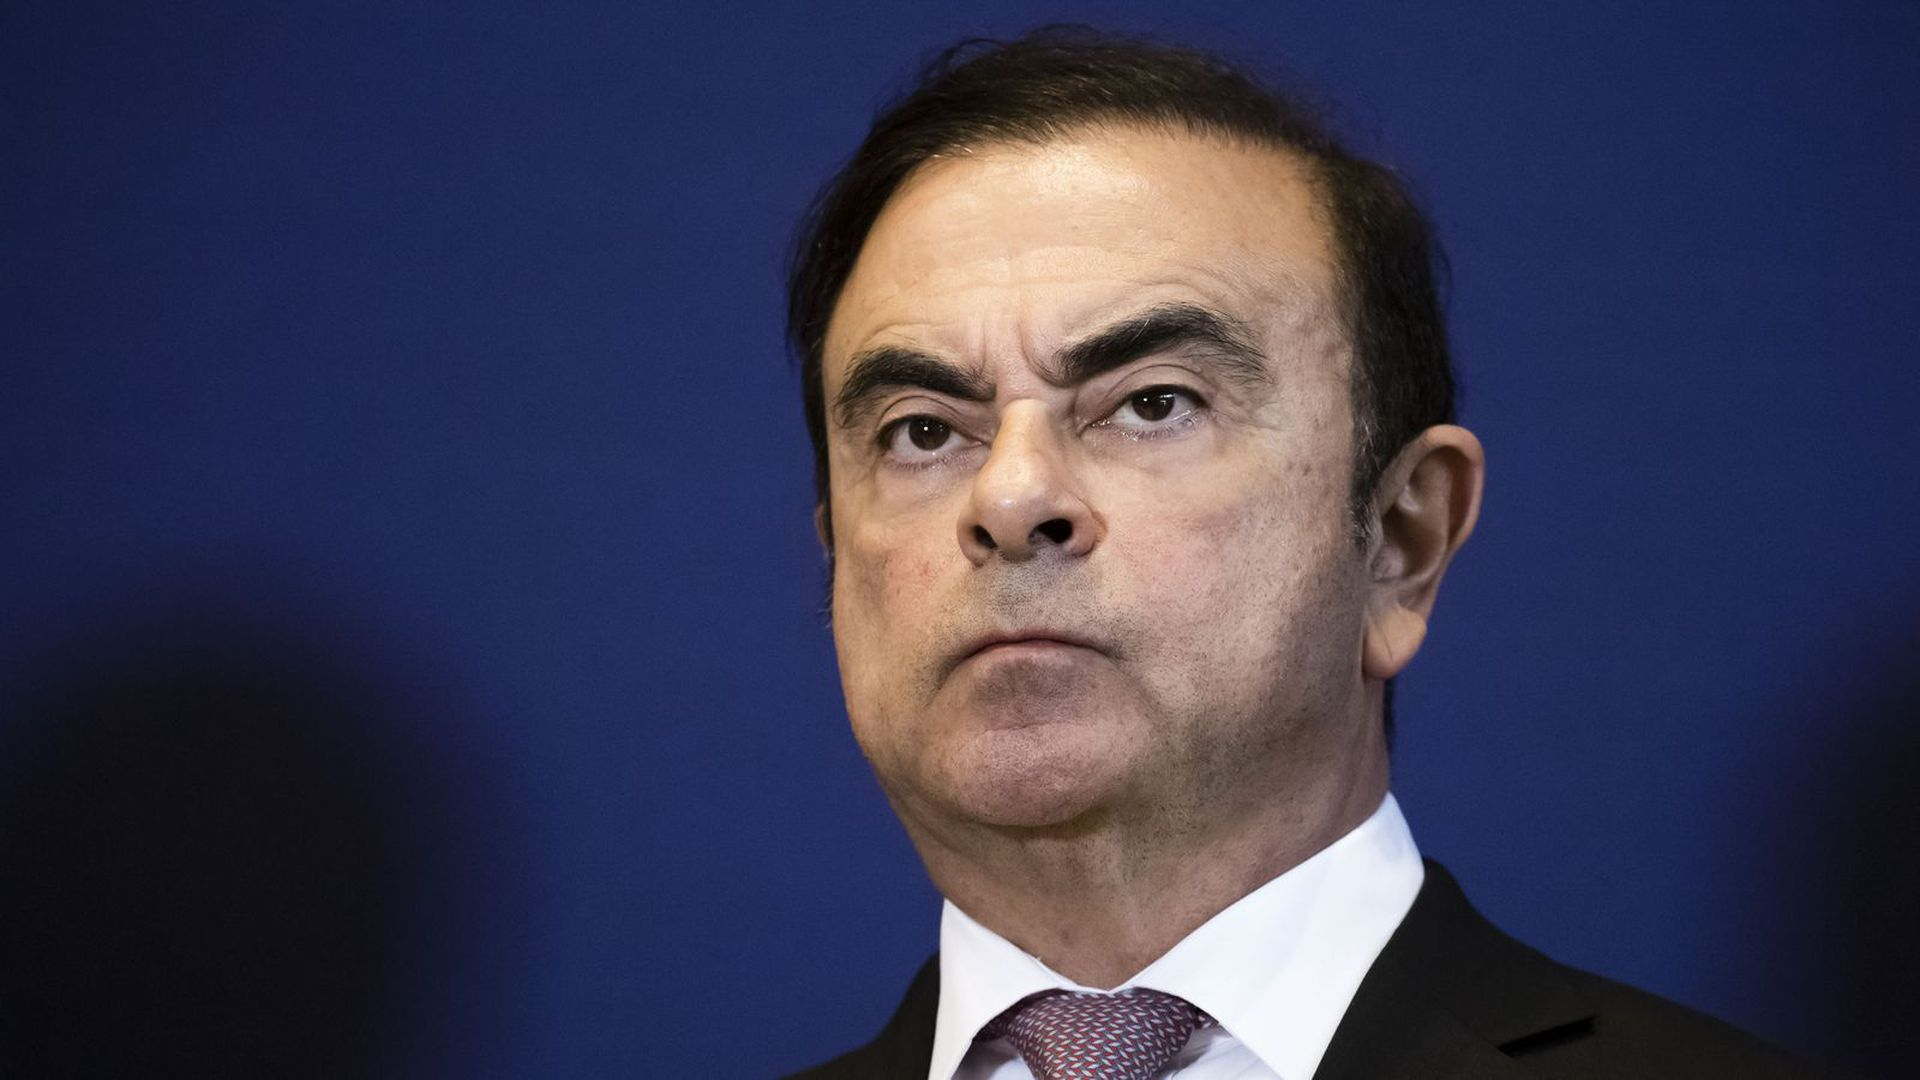 Nissan shareholders approved the ouster of chairman Carlos Ghosn.